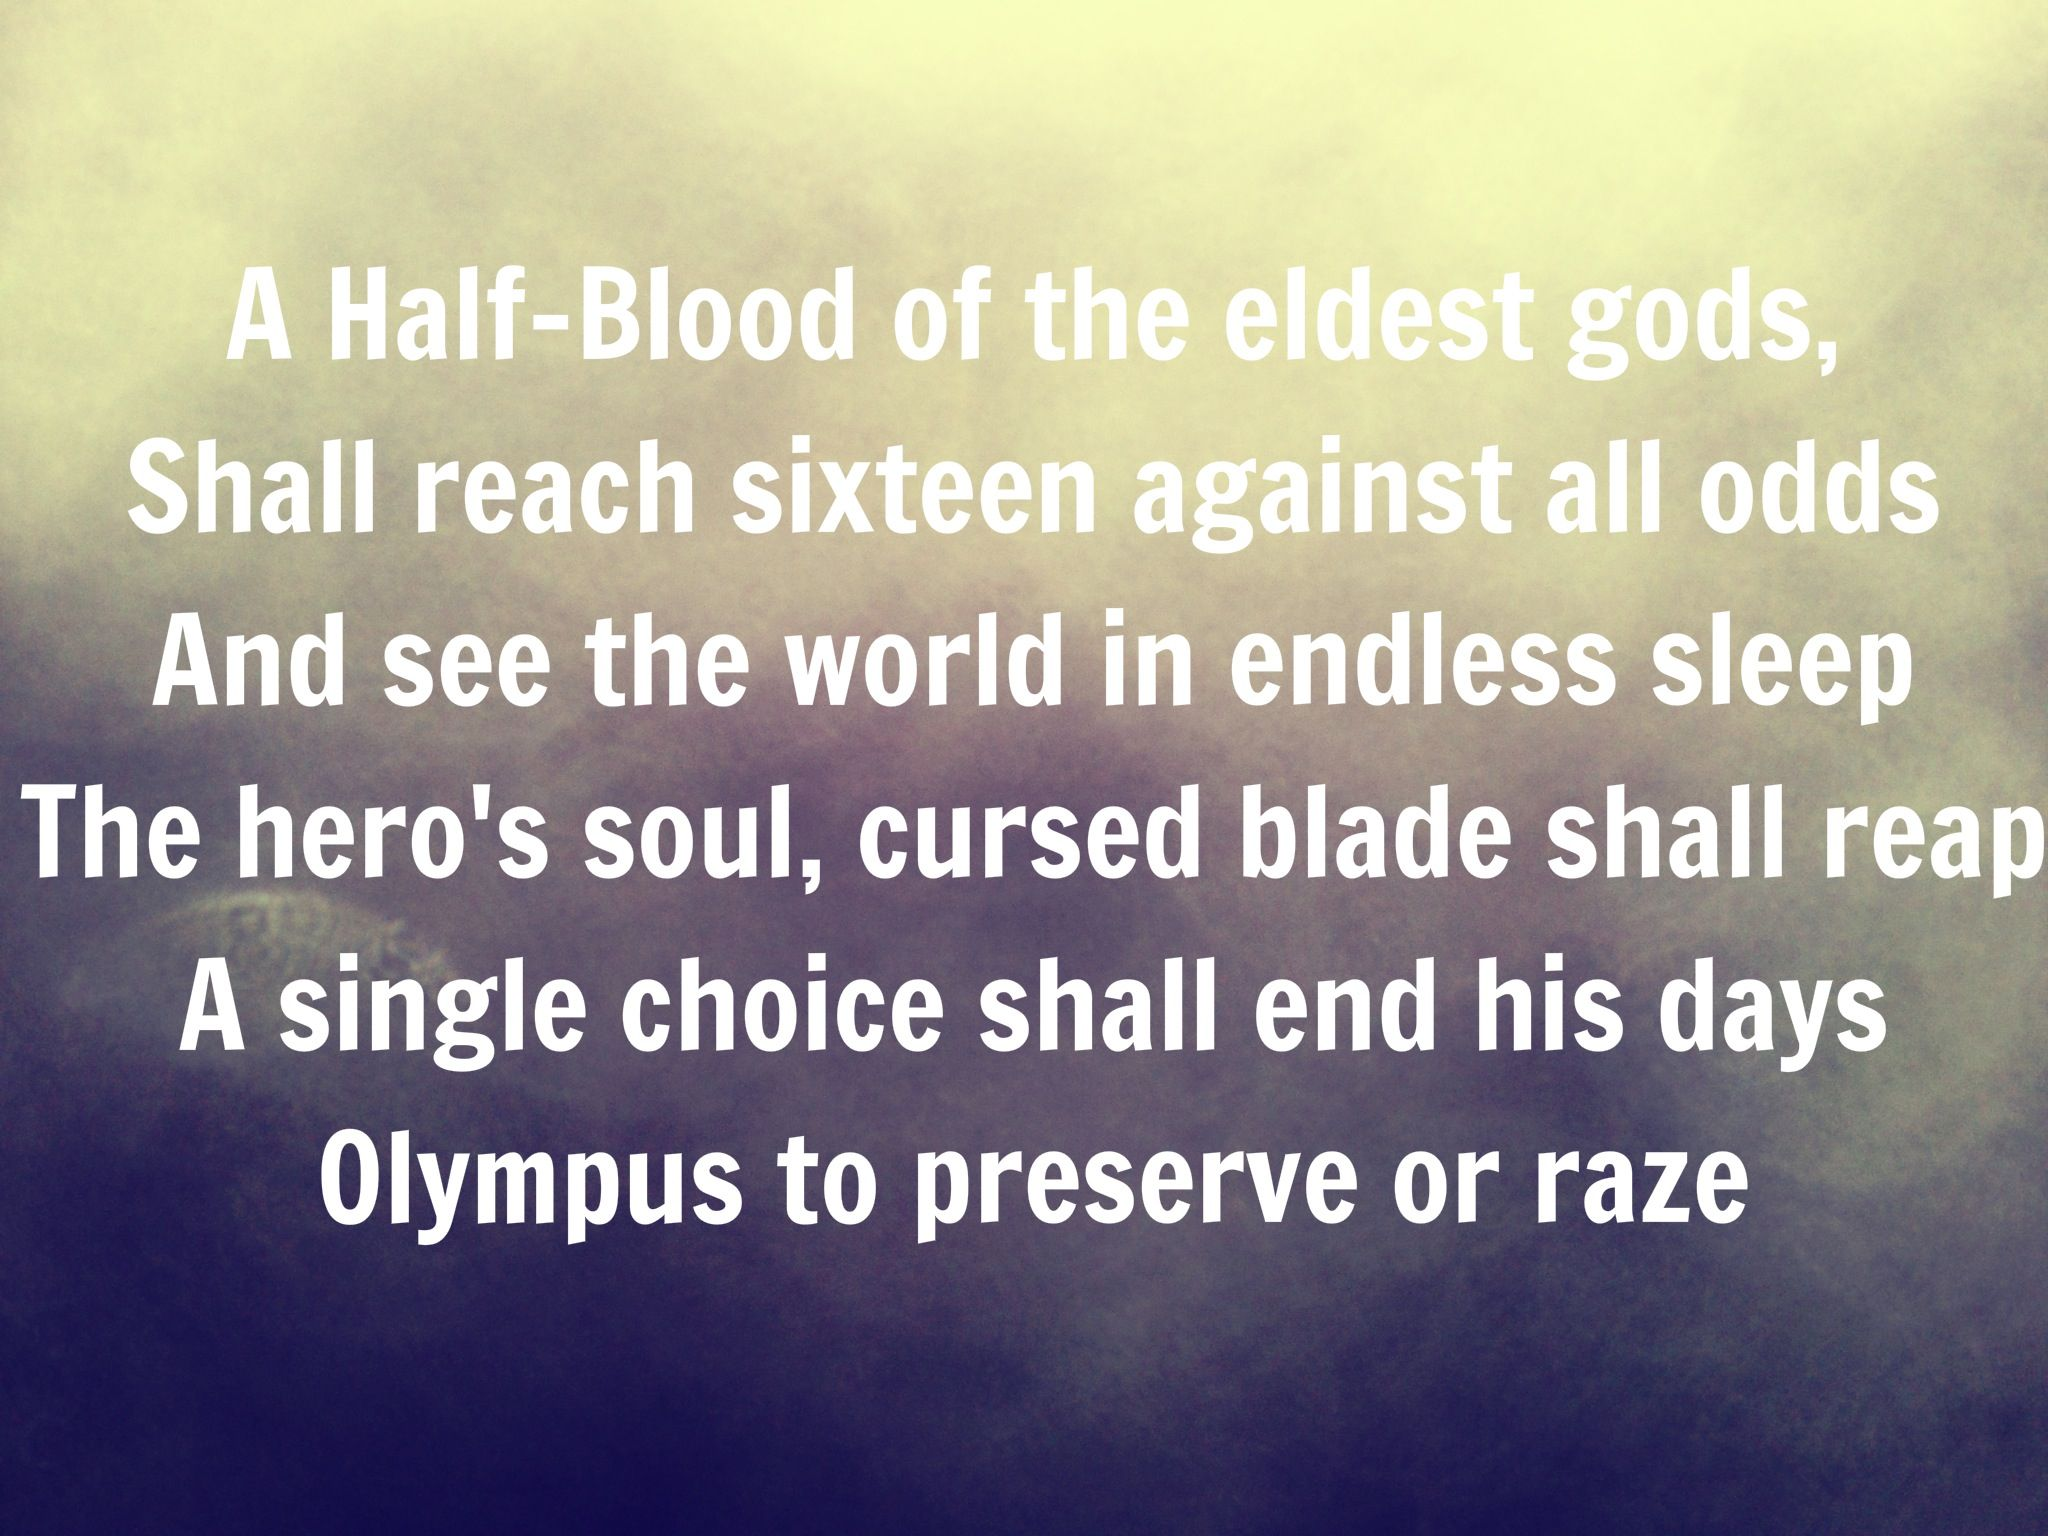 A halfblood of the eldest gods shall reach sixteen against all odds and see the world in endless sleep the Heros soul cursed blade shall reap a single choice shall end his days Olympus to preserve or raze the great prophecy pjo